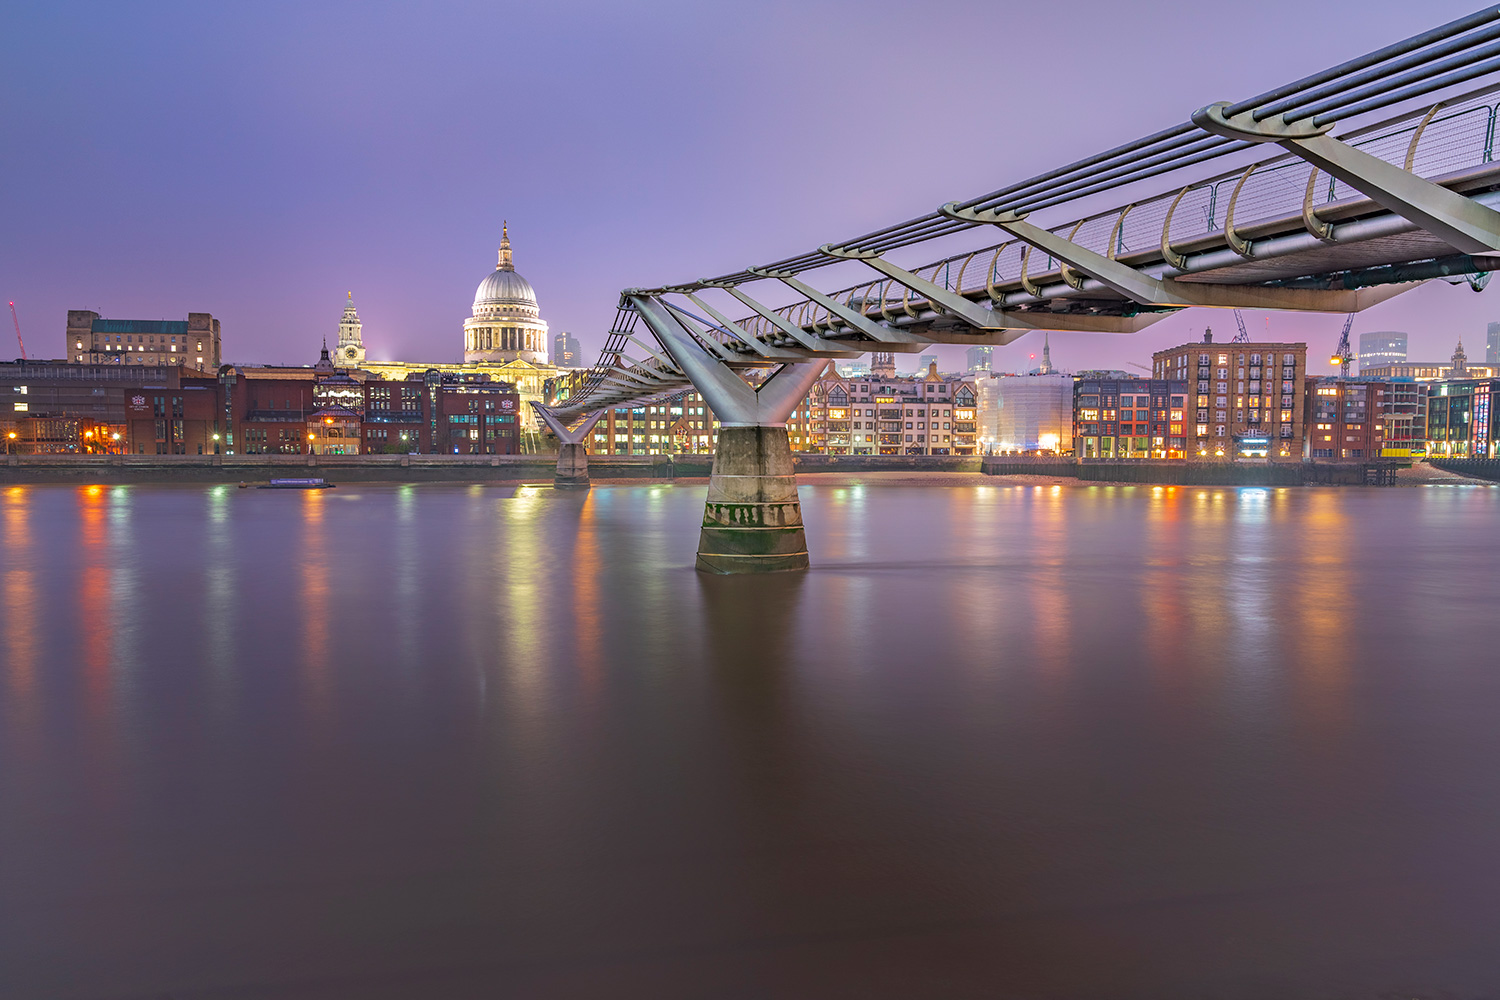 St Paul's Cathedral with Millenium Bridge across the Thames at night